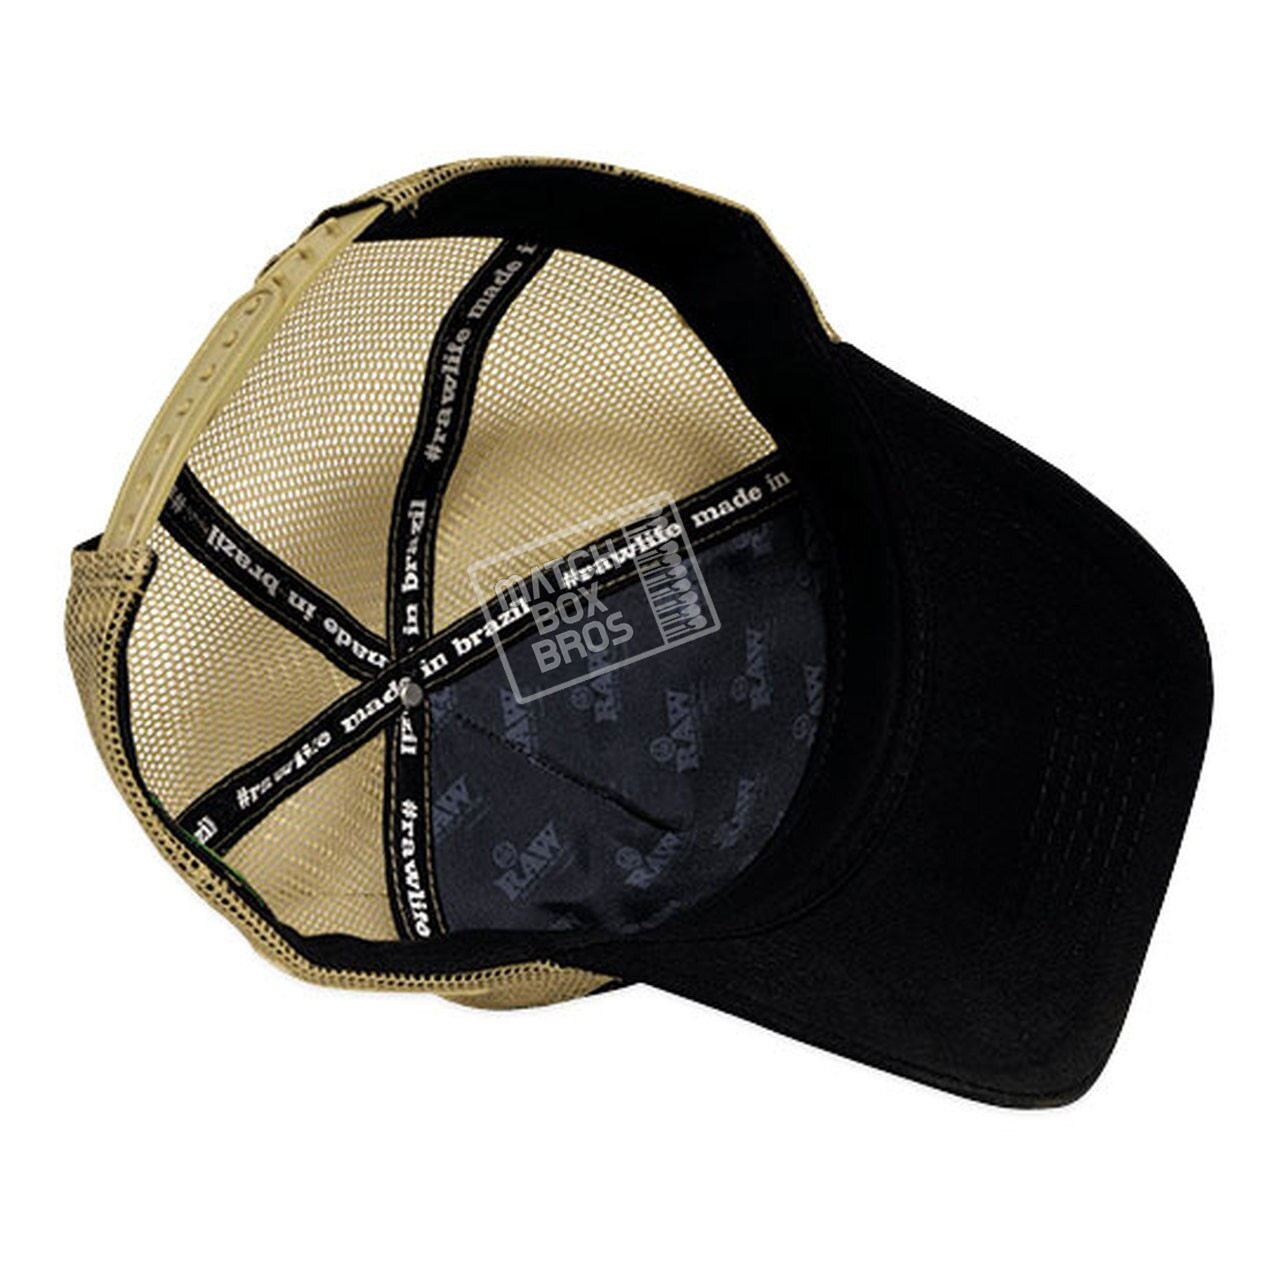 RAW Brazil Black Trucker Hat 03